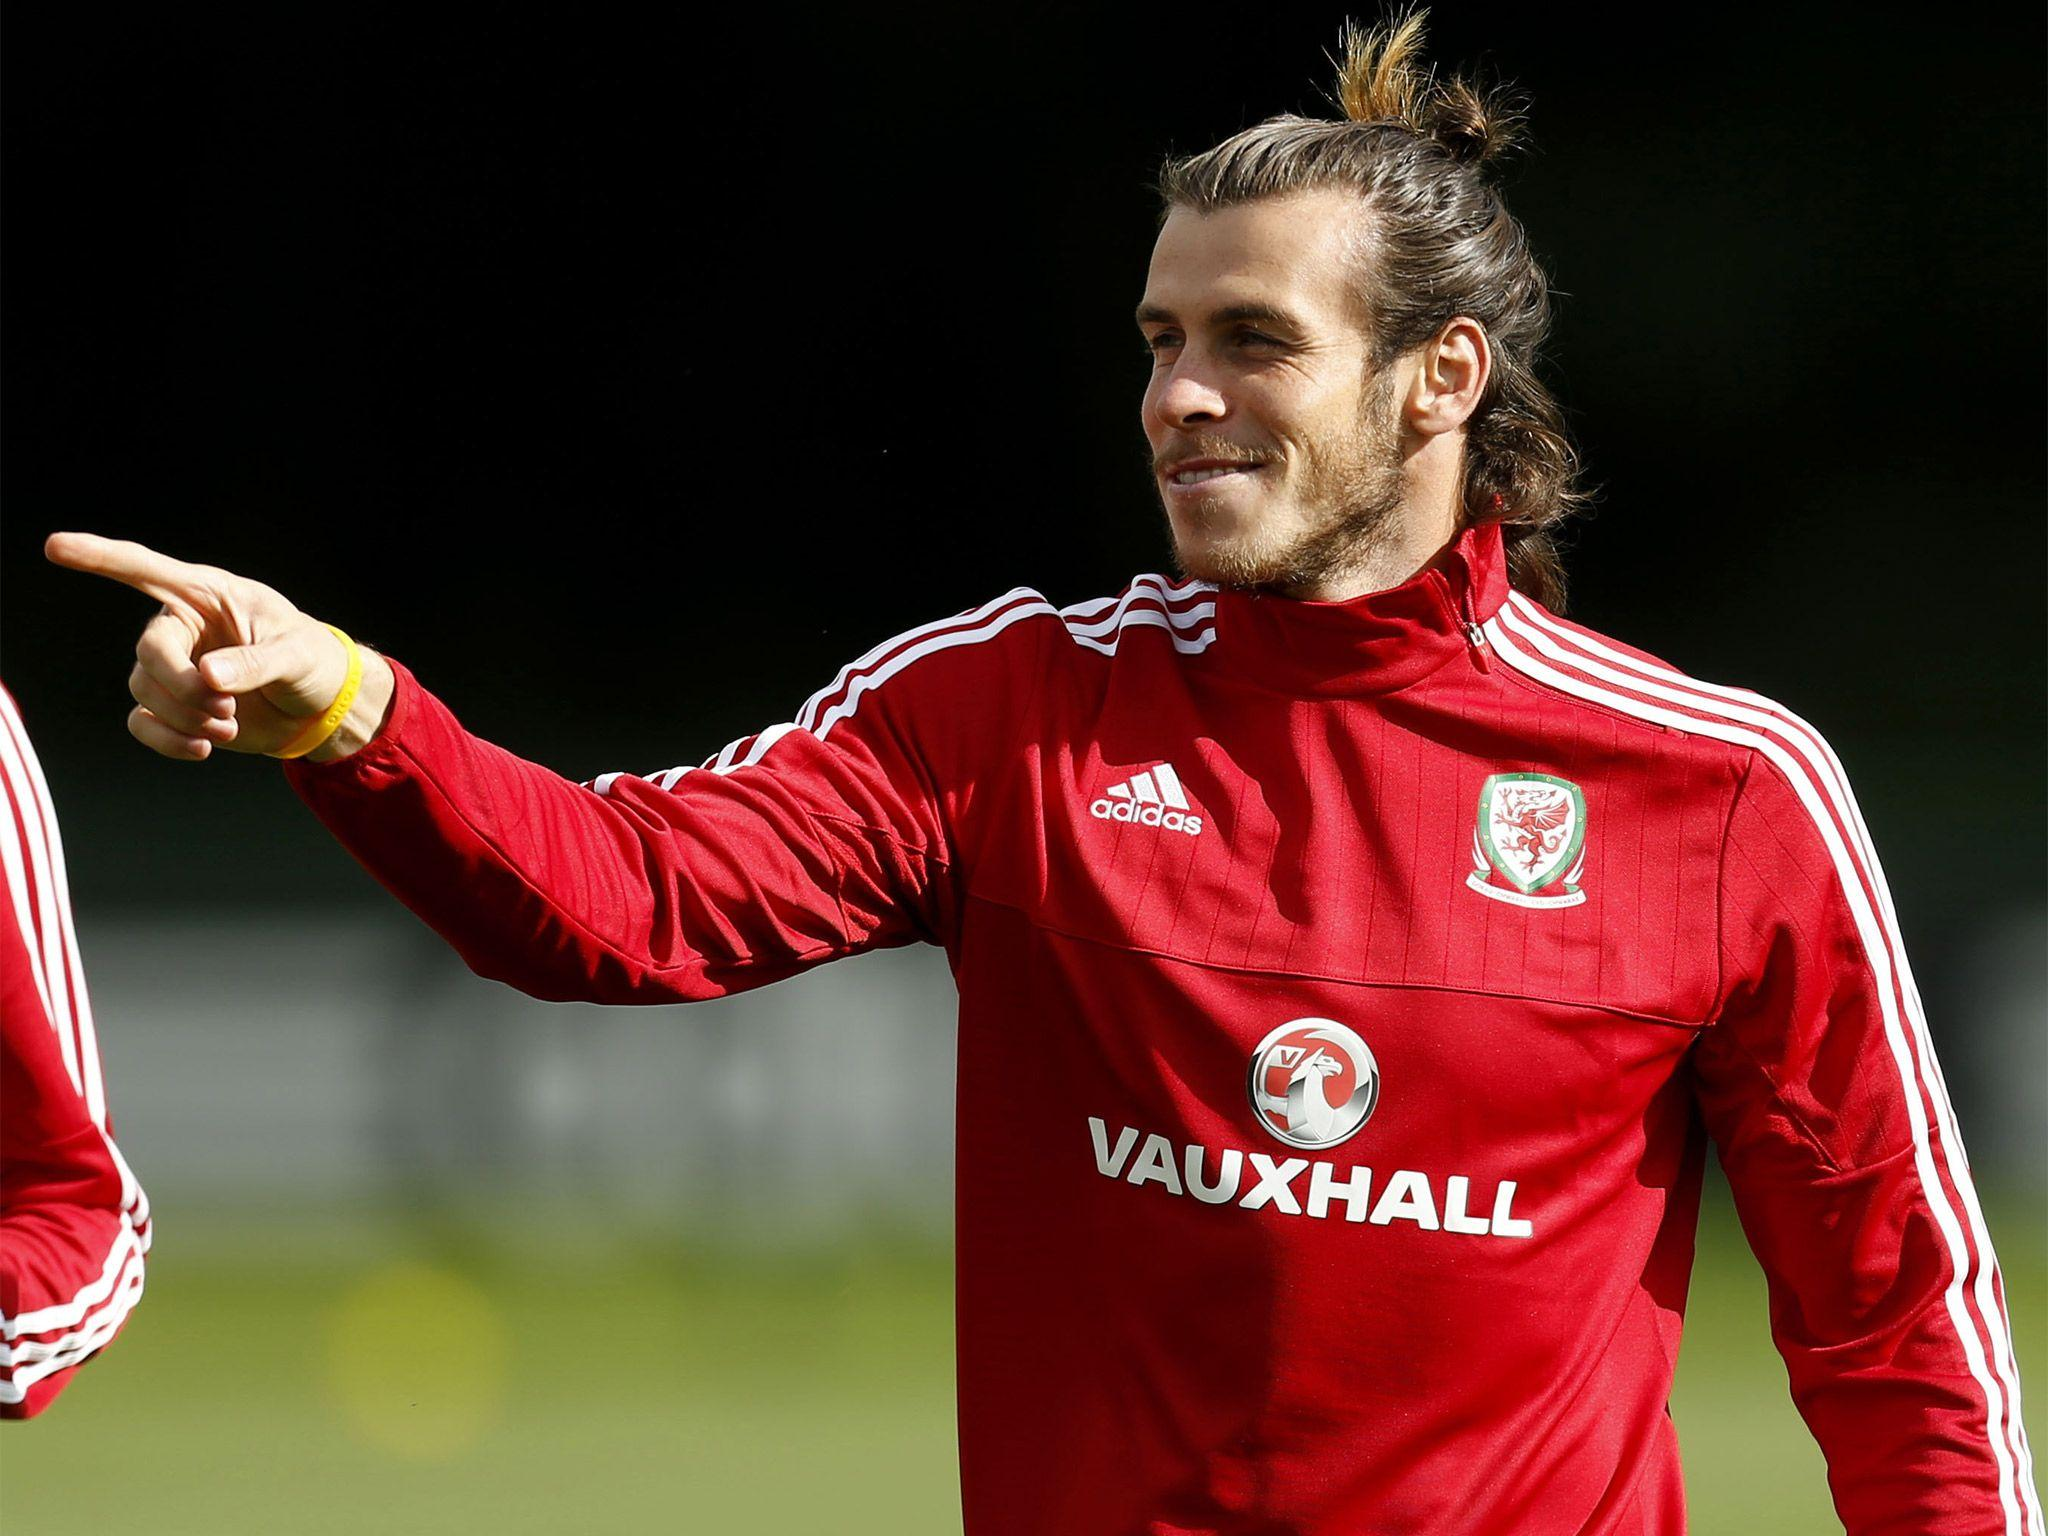 Gareth Bale Wallpapers, Pictures, Image